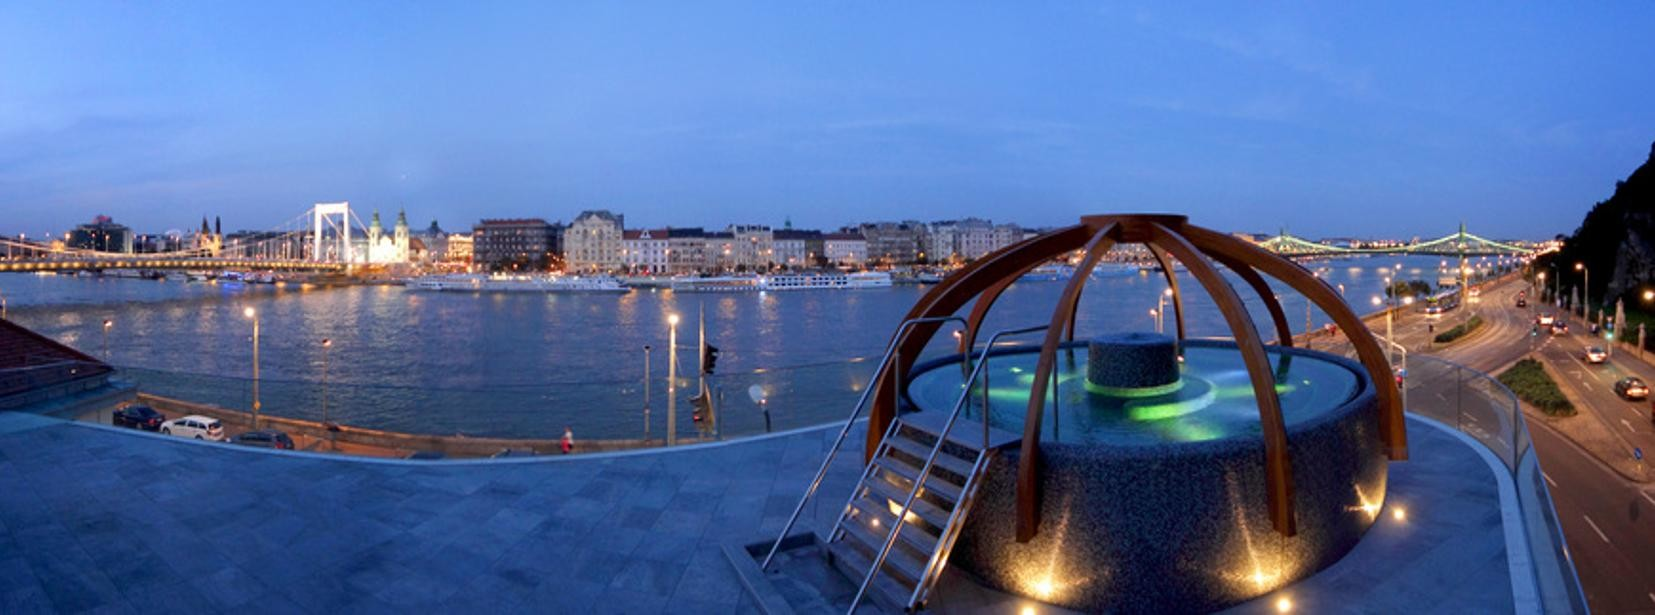 the-best-thermal-baths-budapest-72e06dc8